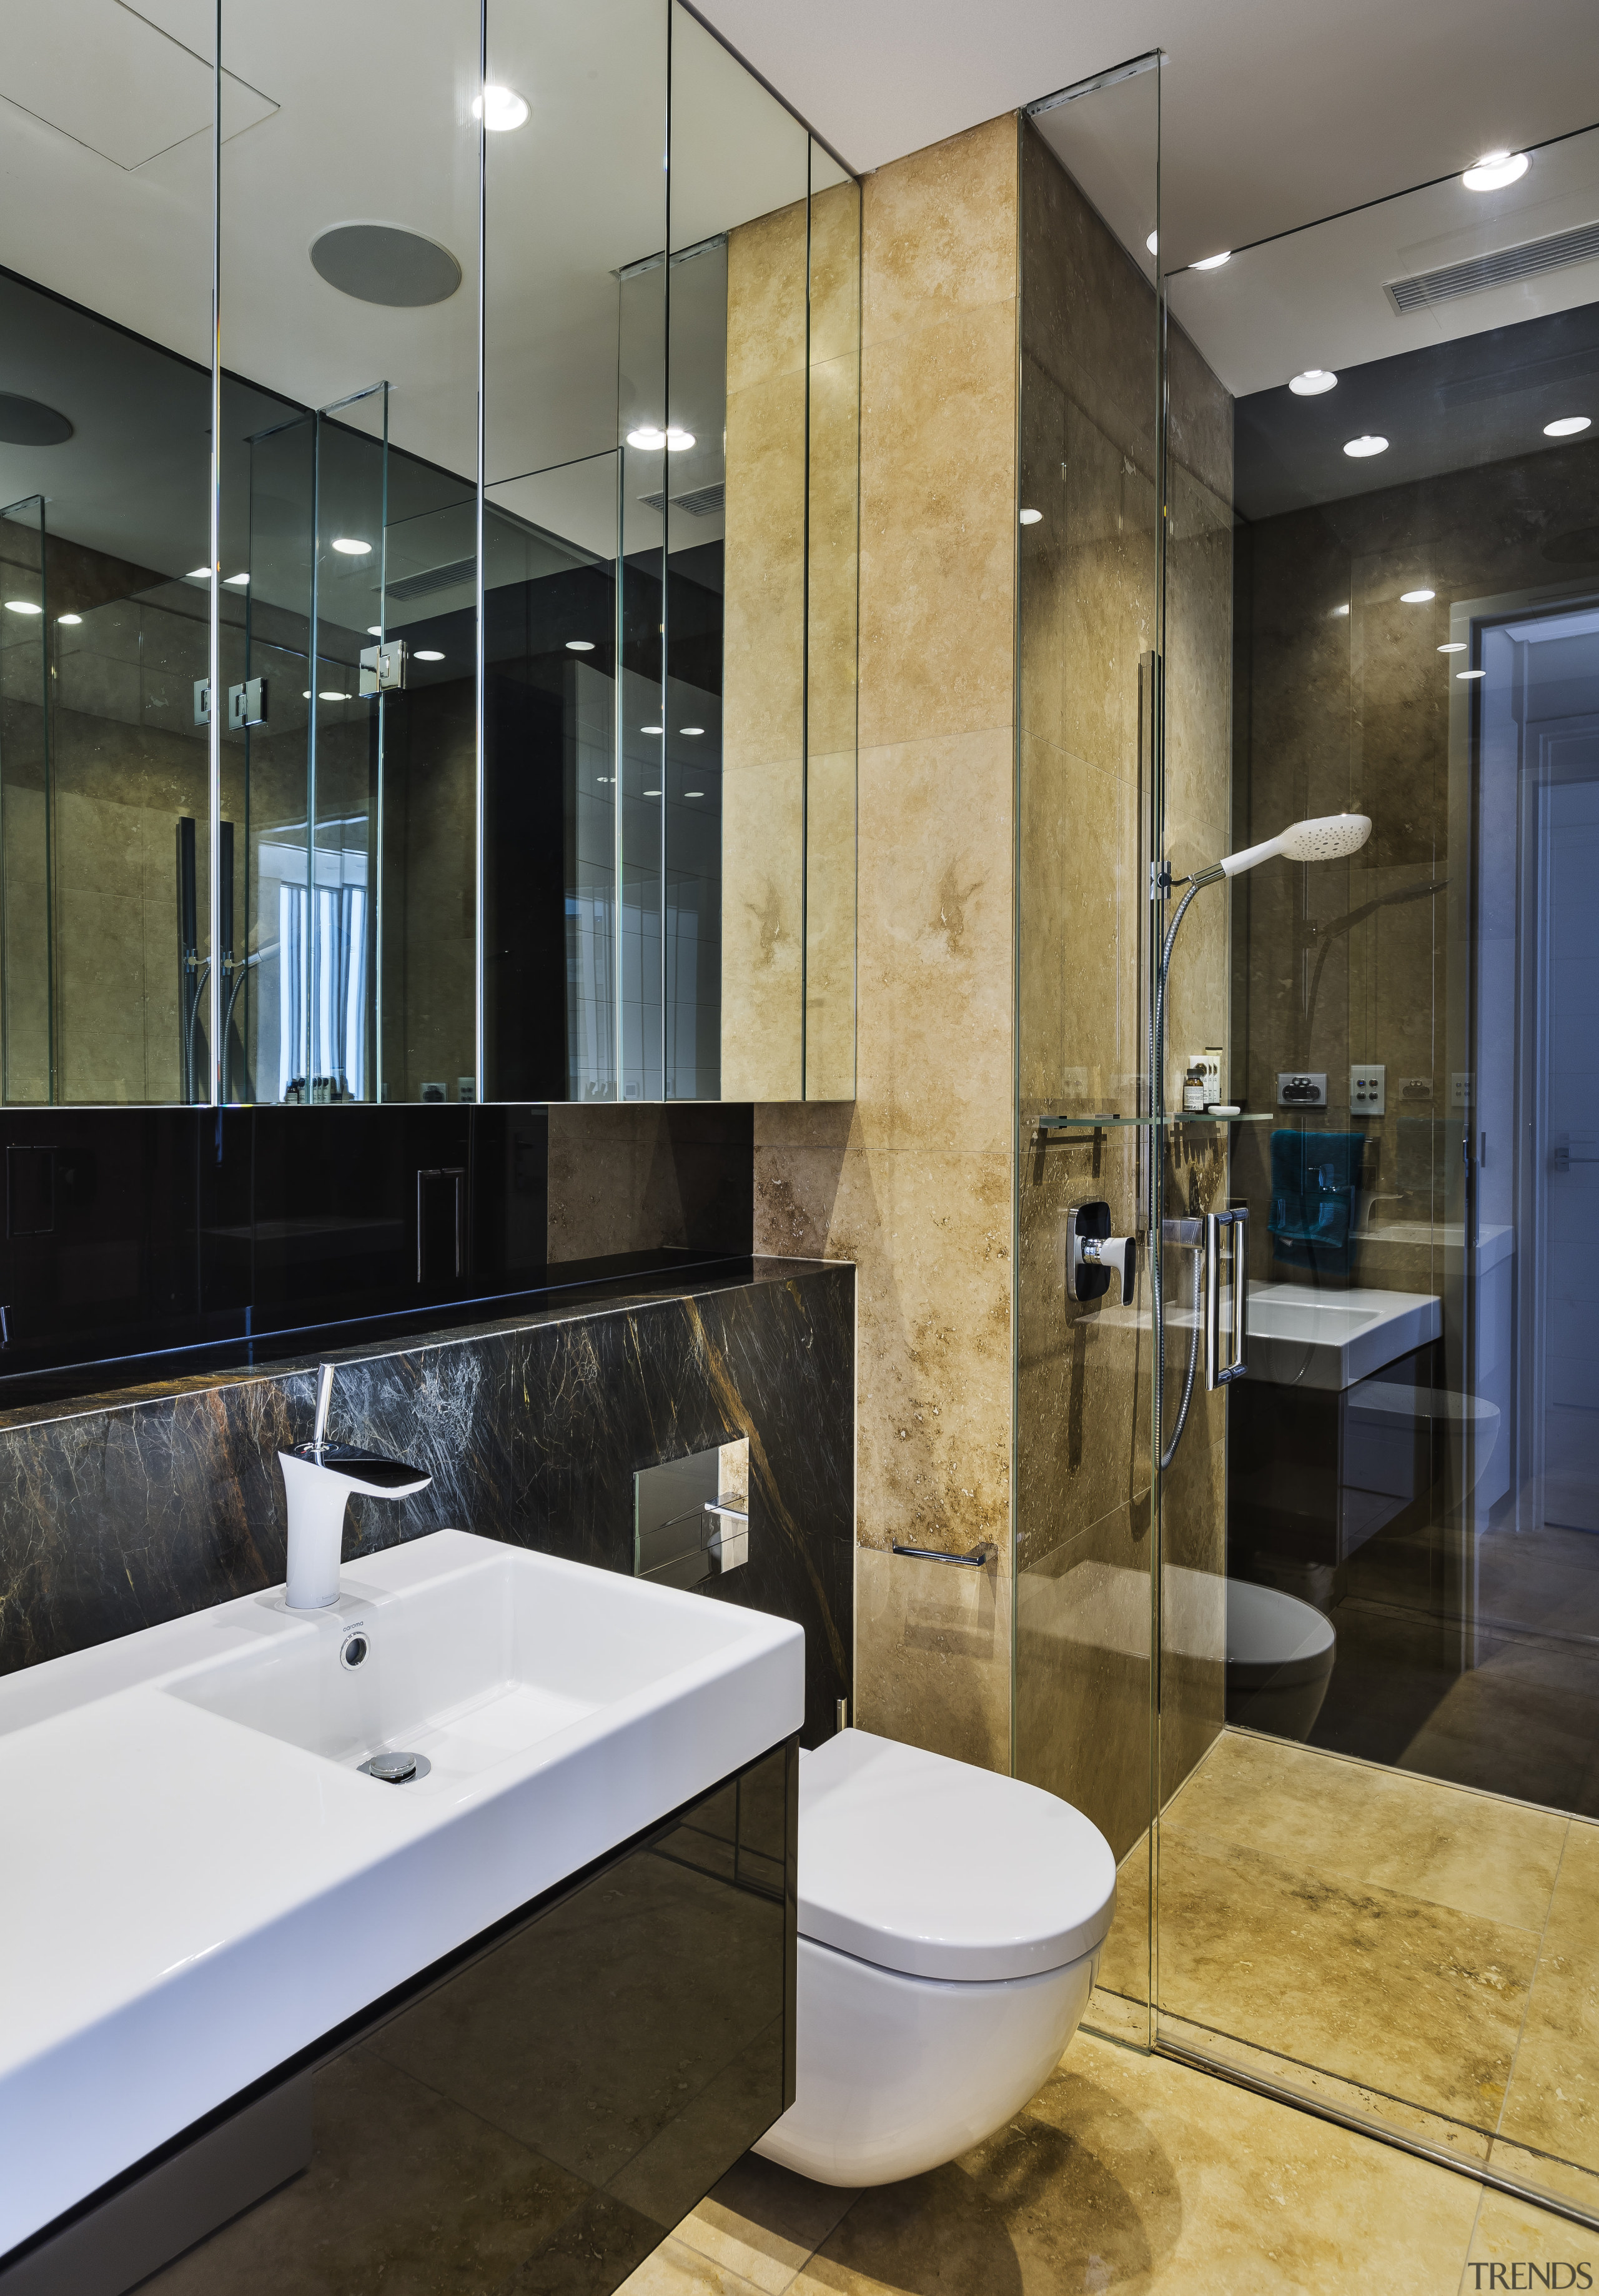 Natural stone is a feature of this ground architecture, bathroom, countertop, floor, interior design, tiles, black, family bathroom, natural stone, Giles & Tribe